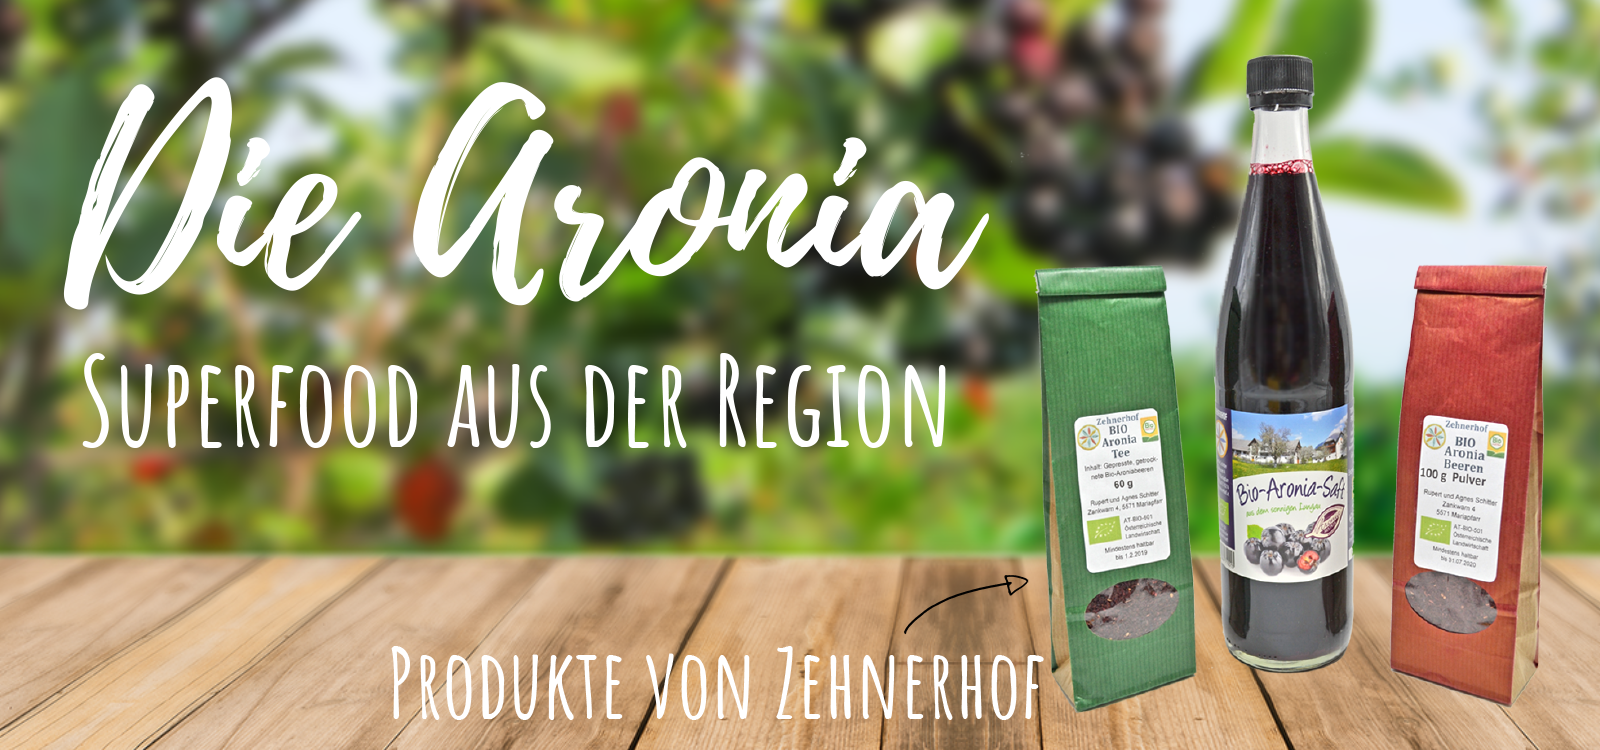 Header-Aronia-Superfood aus der Region